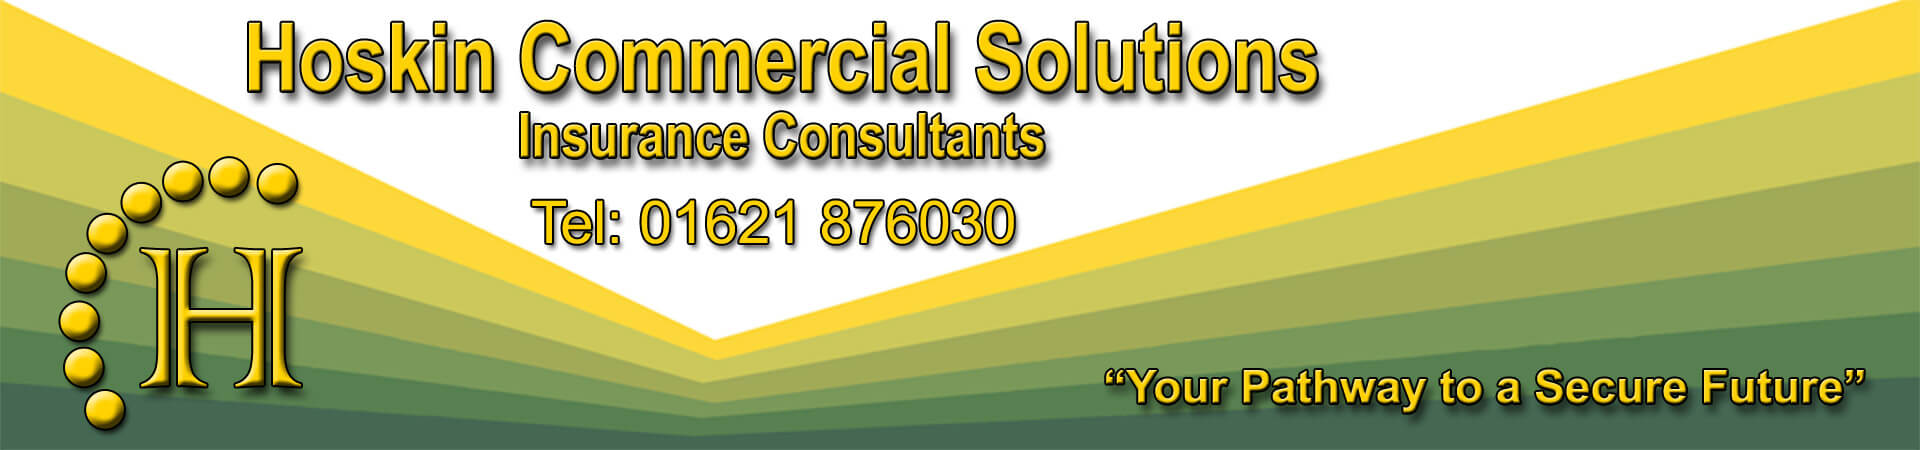 Hoskin Commercial Solutions Insurance Consultants